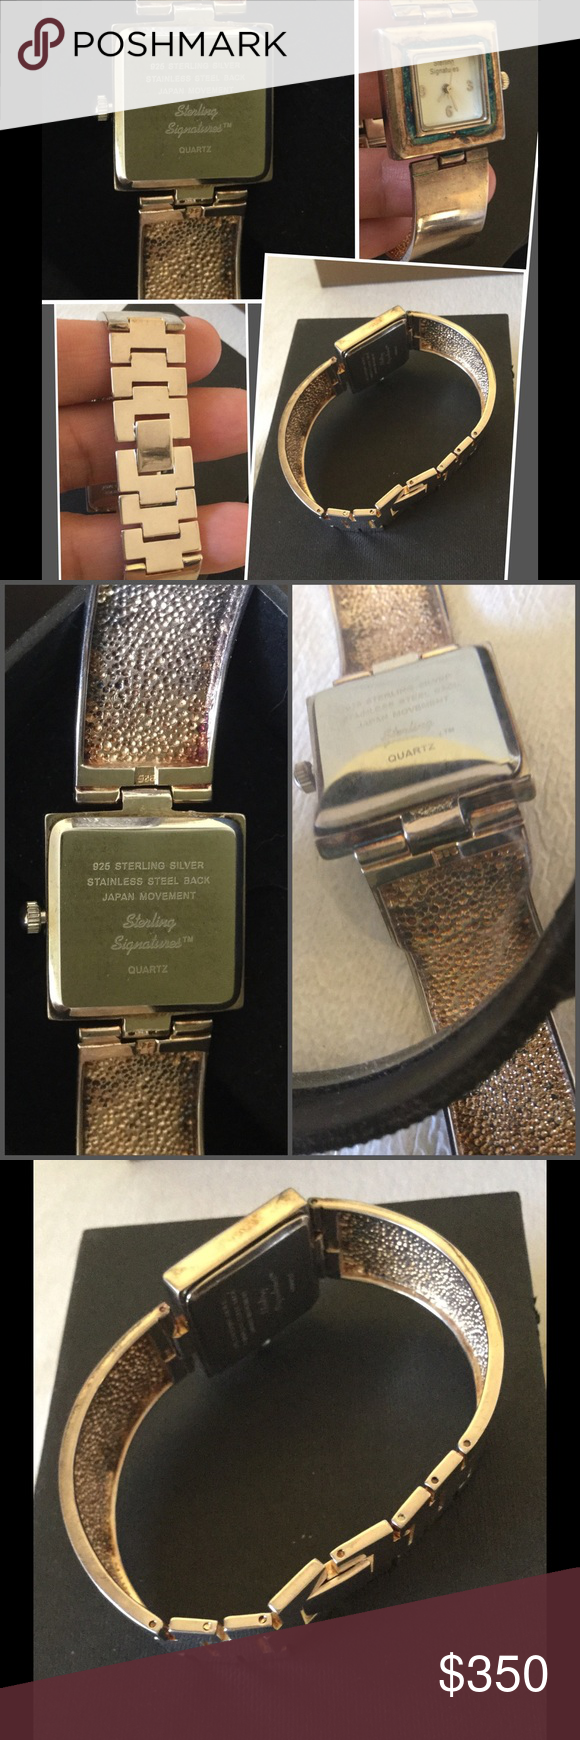 "STERLING Signature Mother of Pearl Watch 🍀Rare🍀 Rare 😍. Fits 7"" wrist. No scratches just needs a little polish. Battery is running. Hallmarked. The bracelet and watch is Solid Sterling Silver 925, only the back is stainless. No trade pls. Make your best offer. Pls NOTE: The blue color is flash reflection from the Mother of Pearl face. Sterling Signature Jewelry"